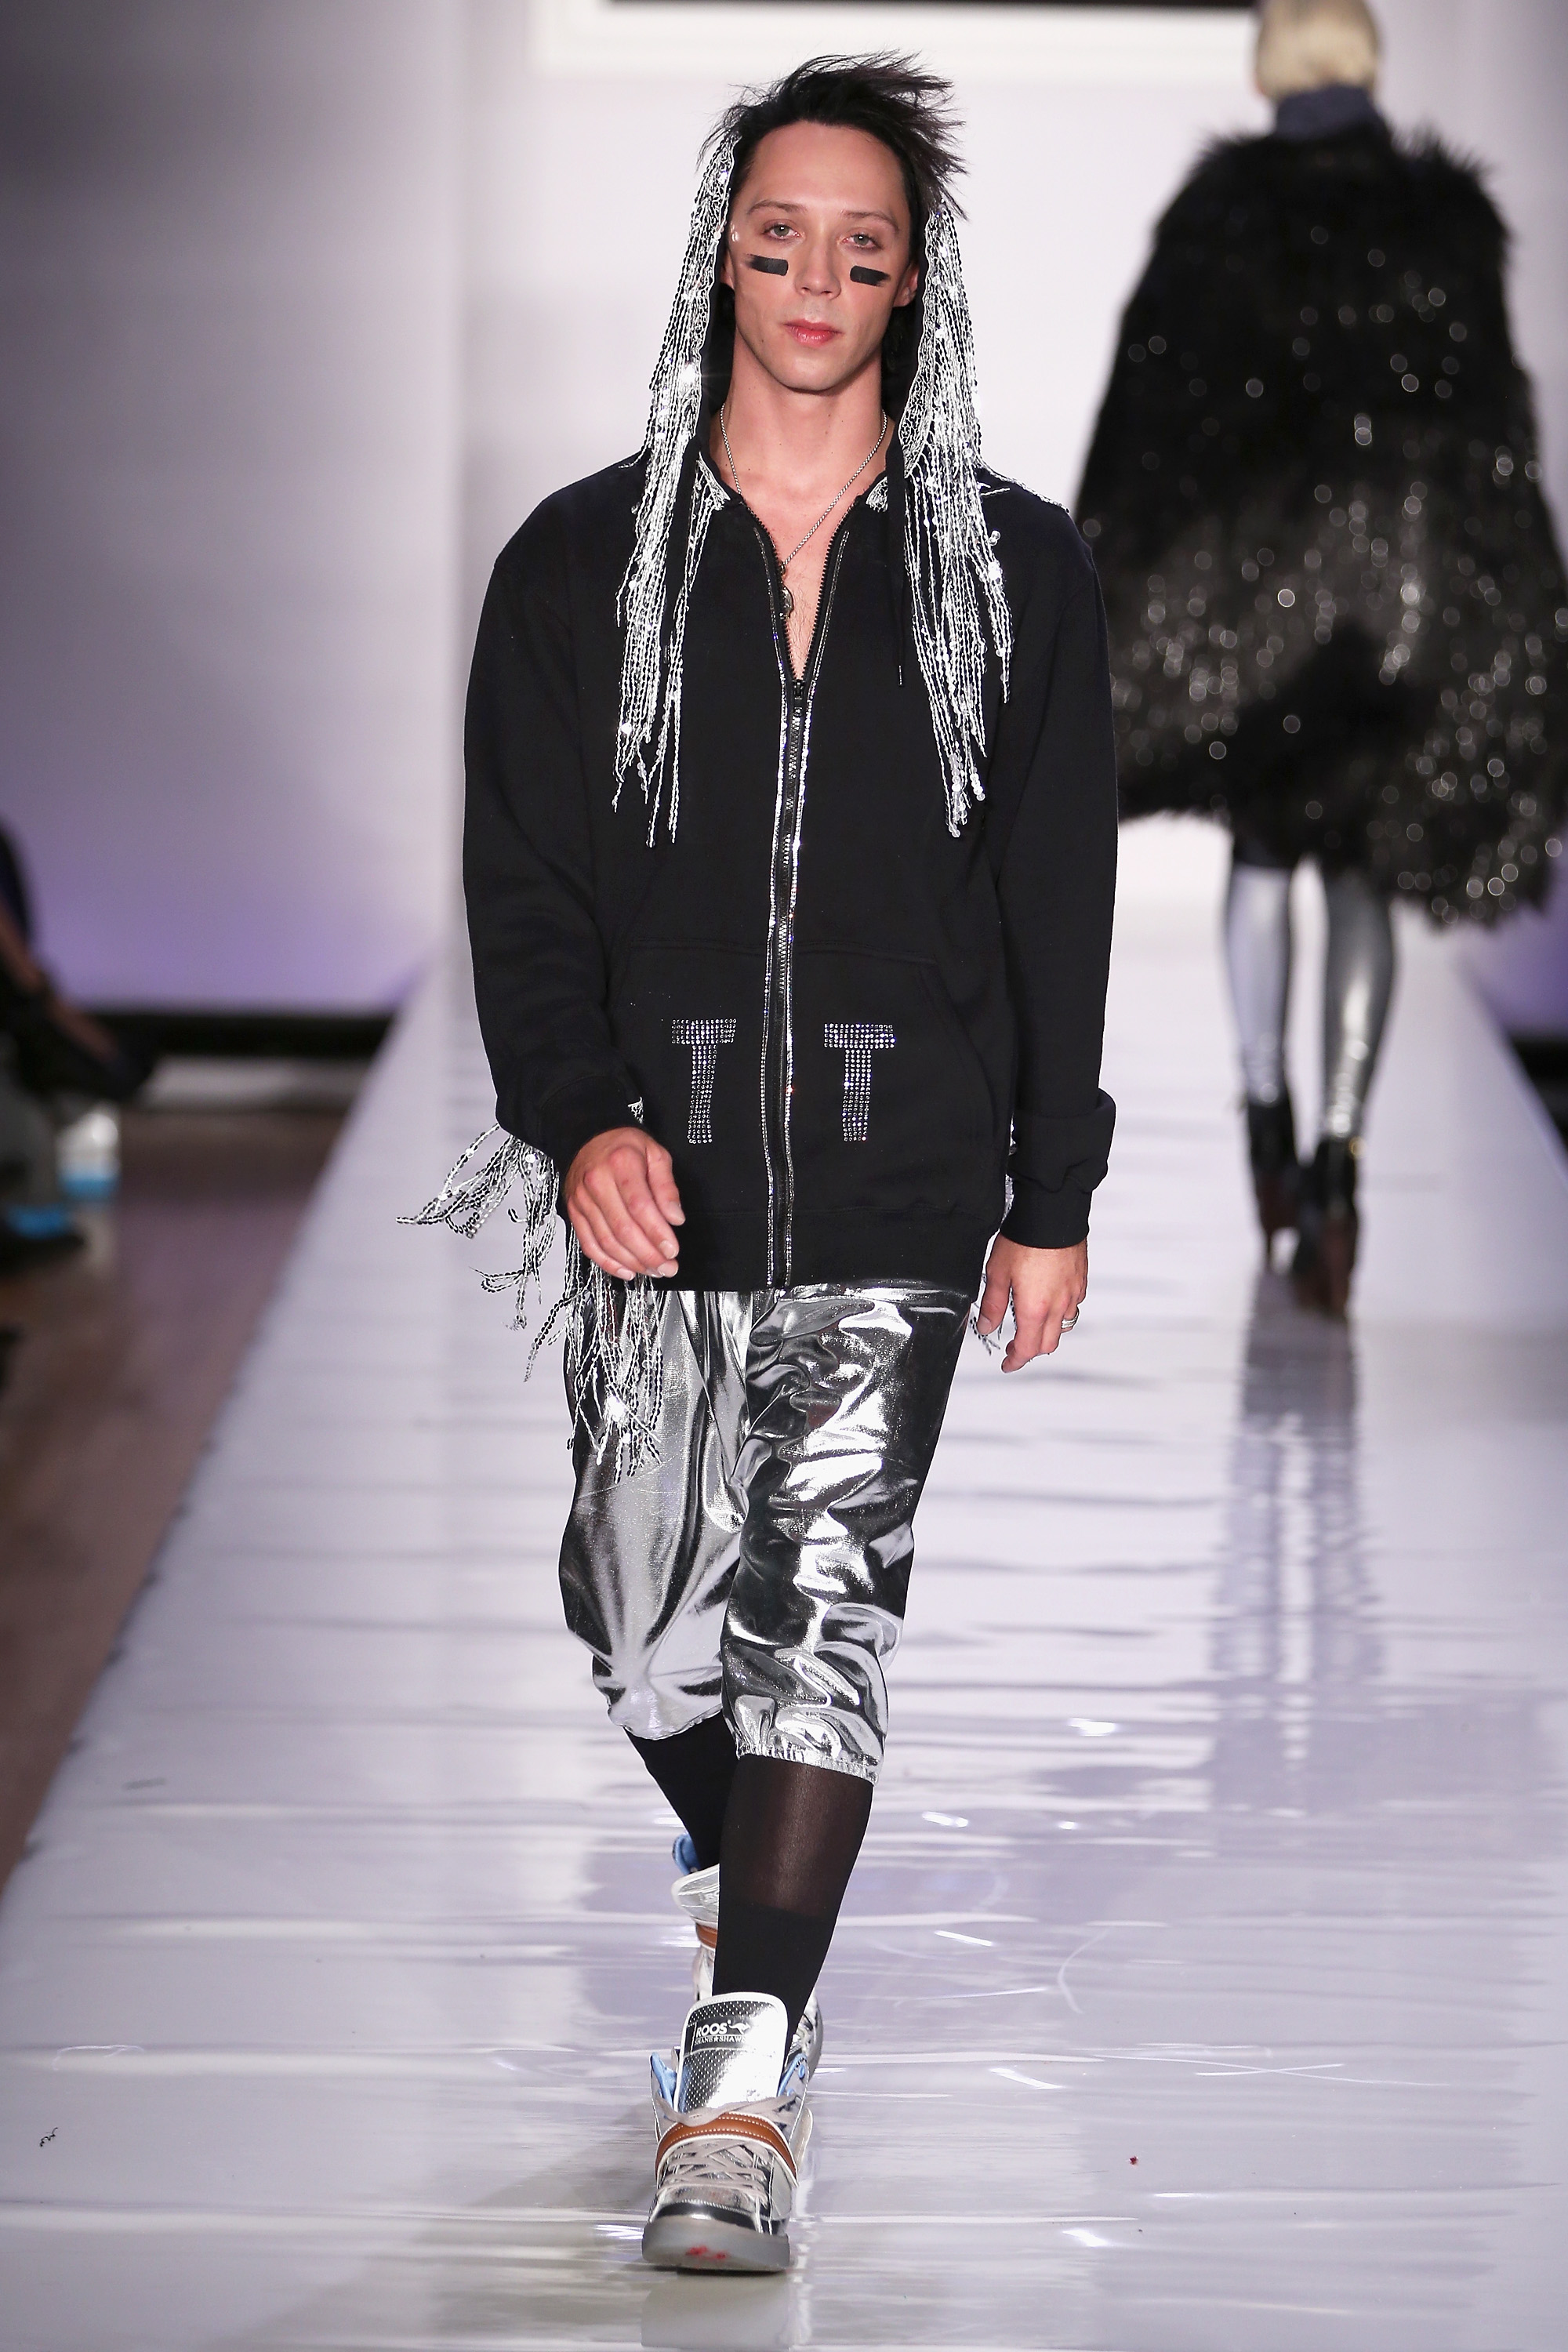 Tumbler and Tipsy New York Fashion Week Fall 2013 Look 51 Johnny Weir